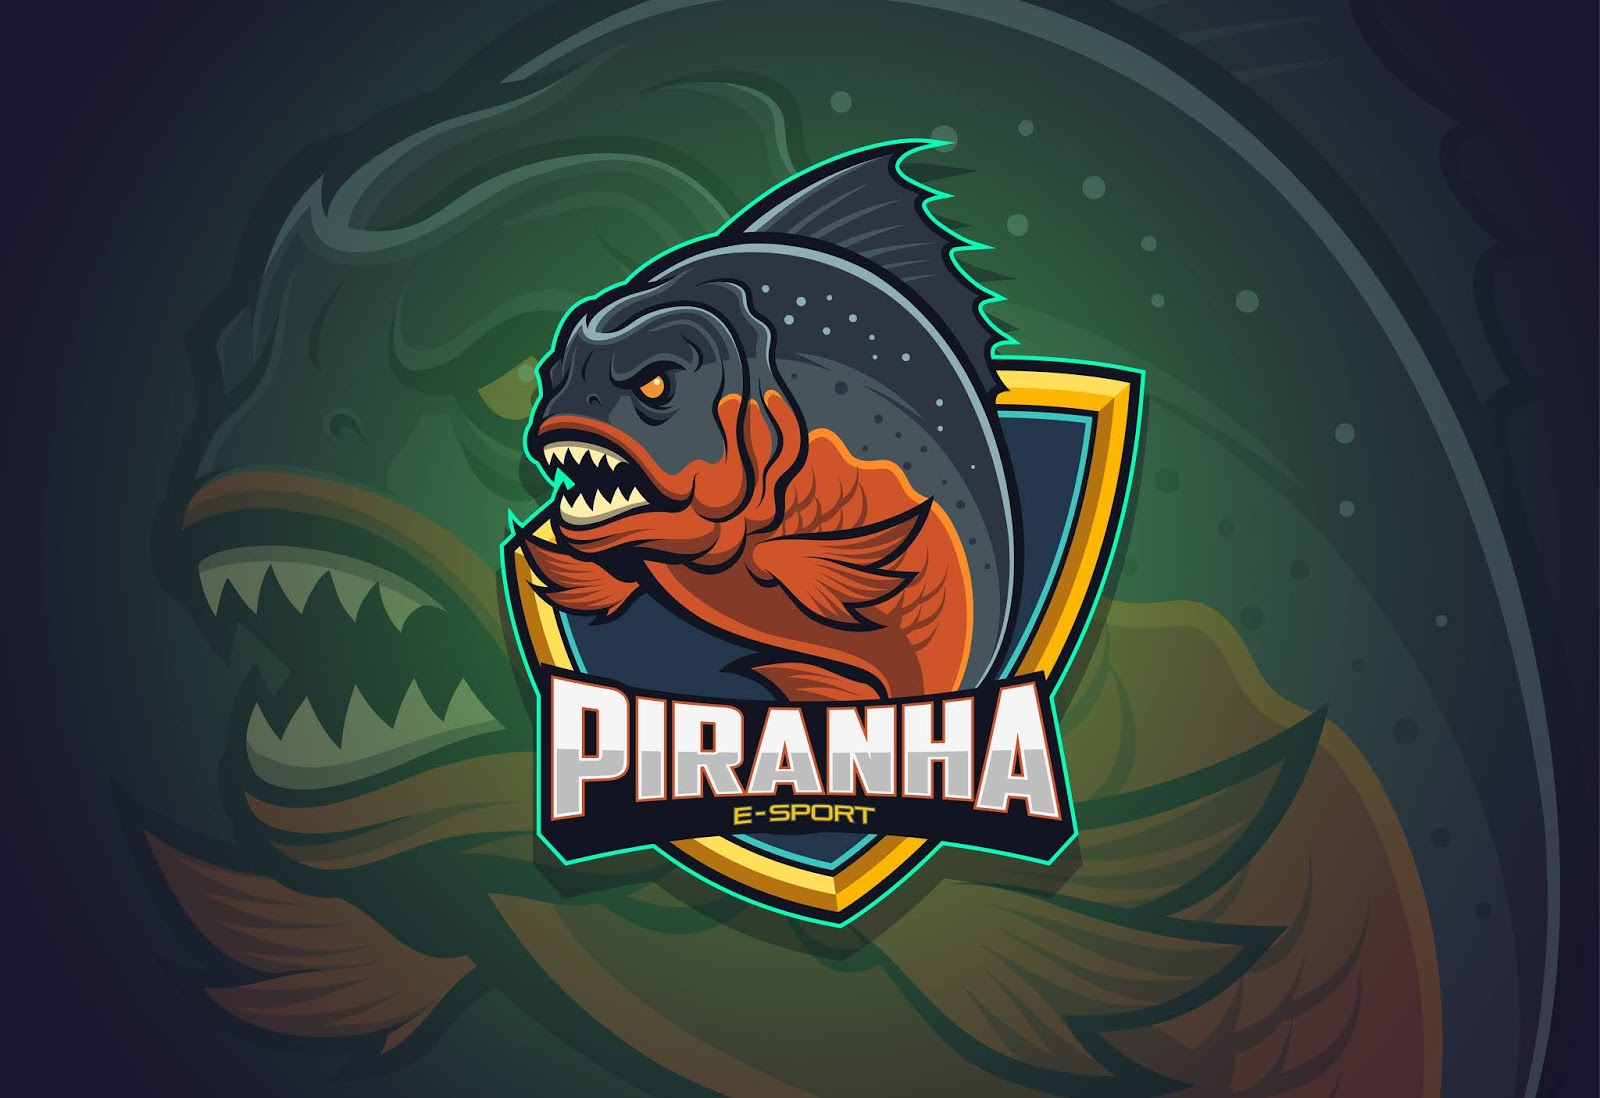 Piranha Esport Logo Design Free Download Vector CDR, AI, EPS and PNG Formats